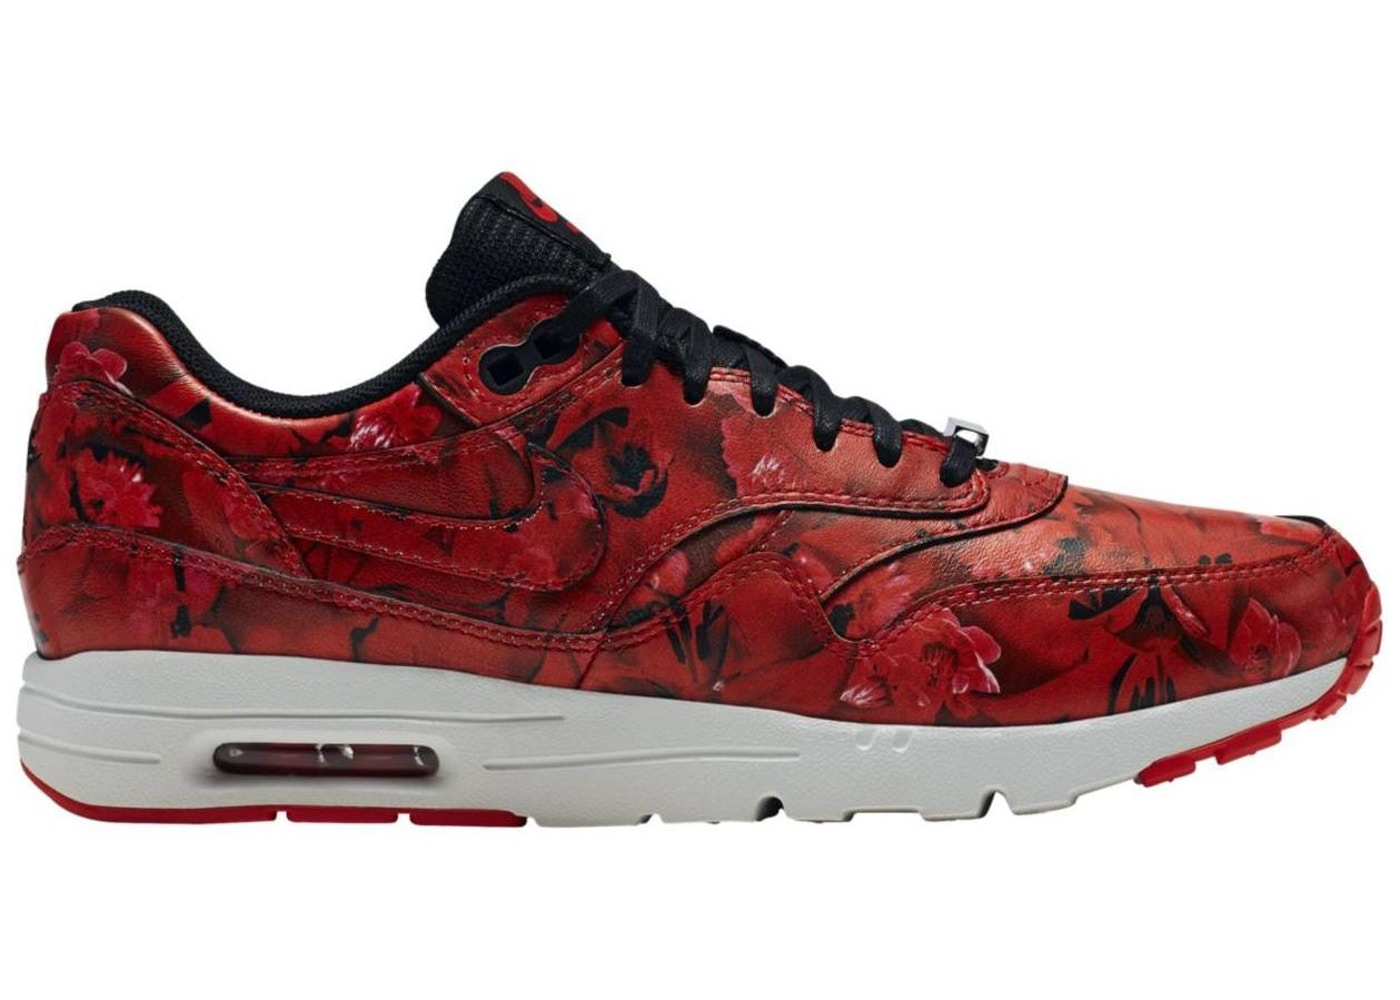 huge selection of 3f1c3 fcafd Air Max 1 Shanghai City Collection (W) - 747105-600